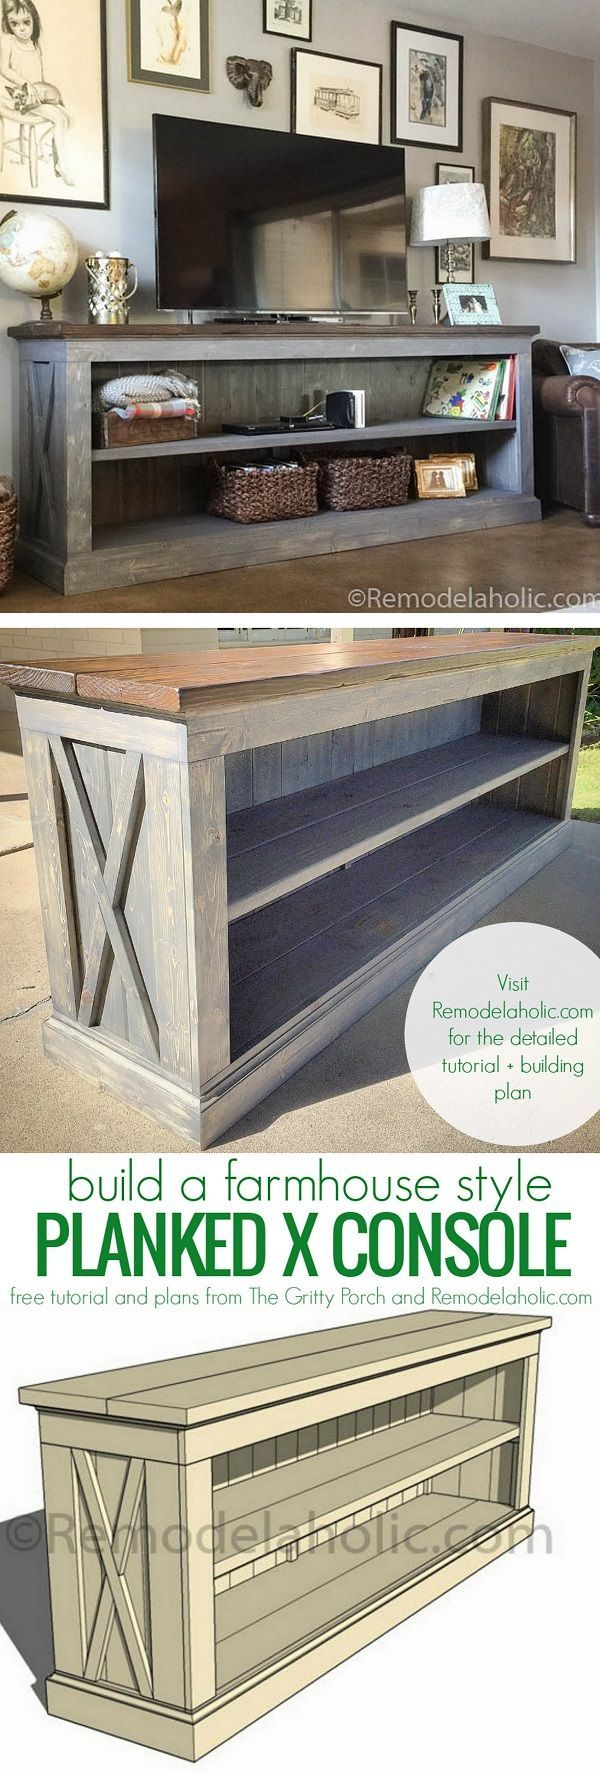 21 Diy Tv Stand Ideas For Your Weekend Home Project Diy